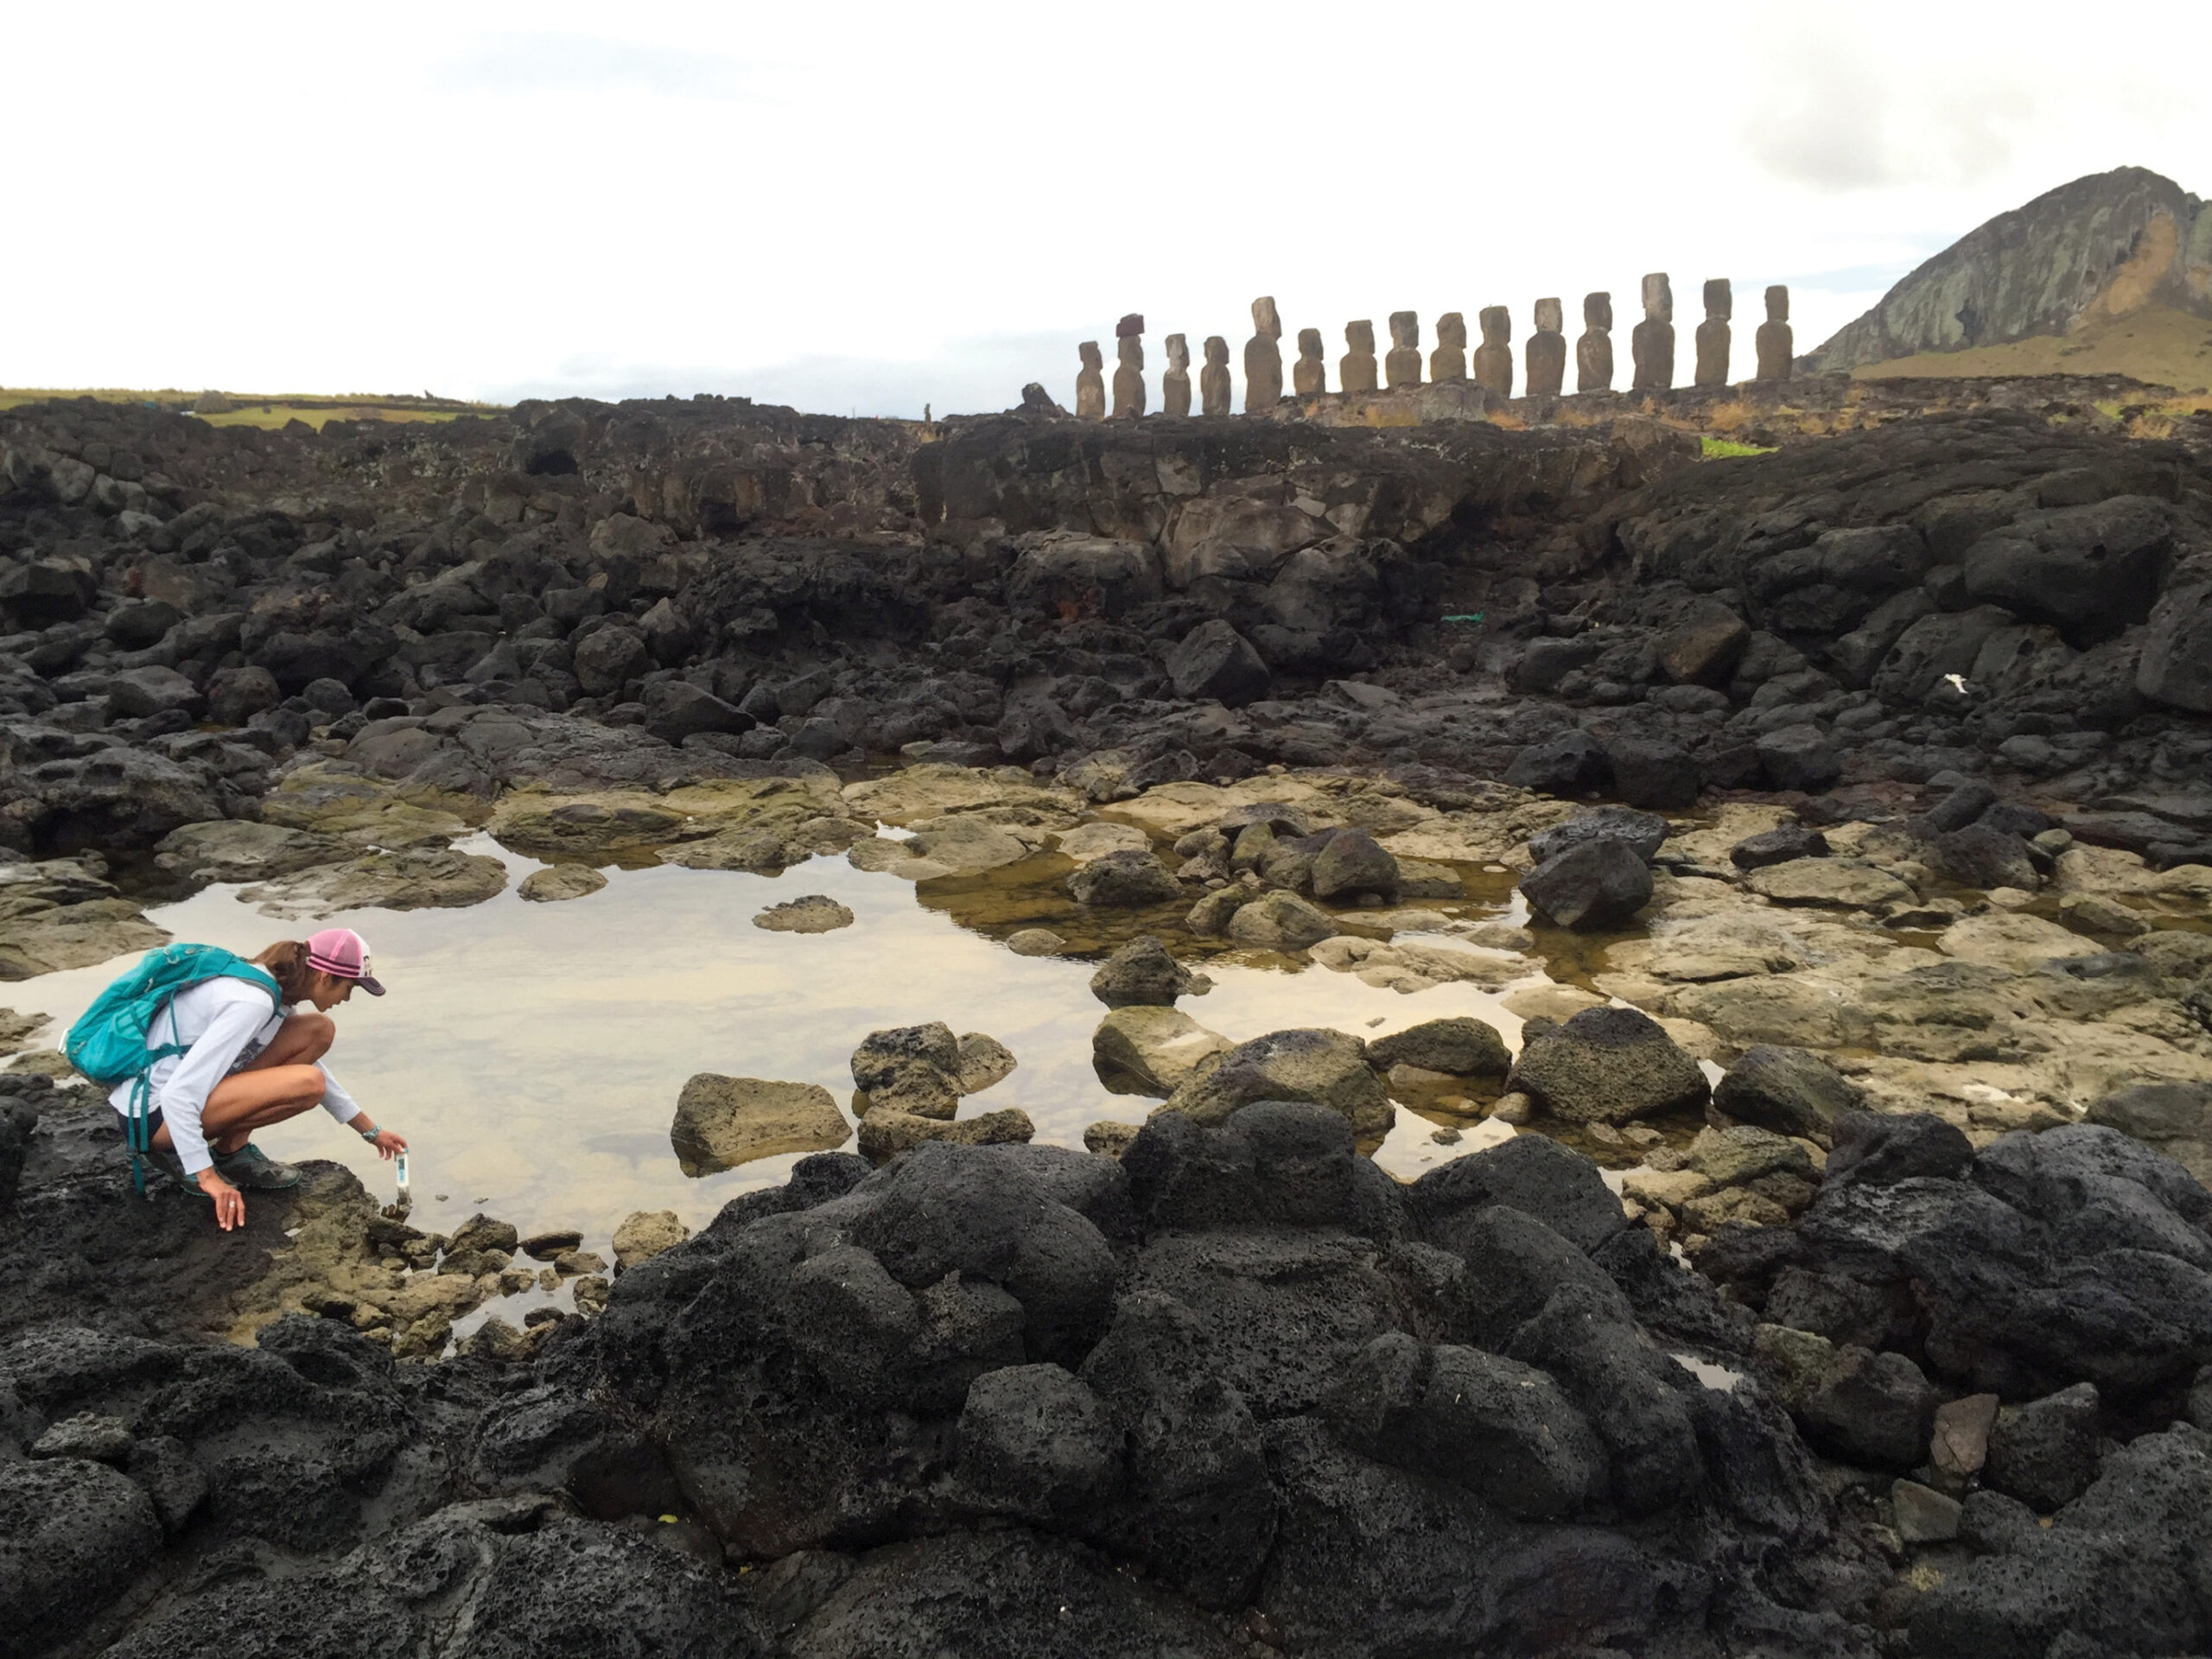 Where to build a monument: mapping megaliths on Easter Island